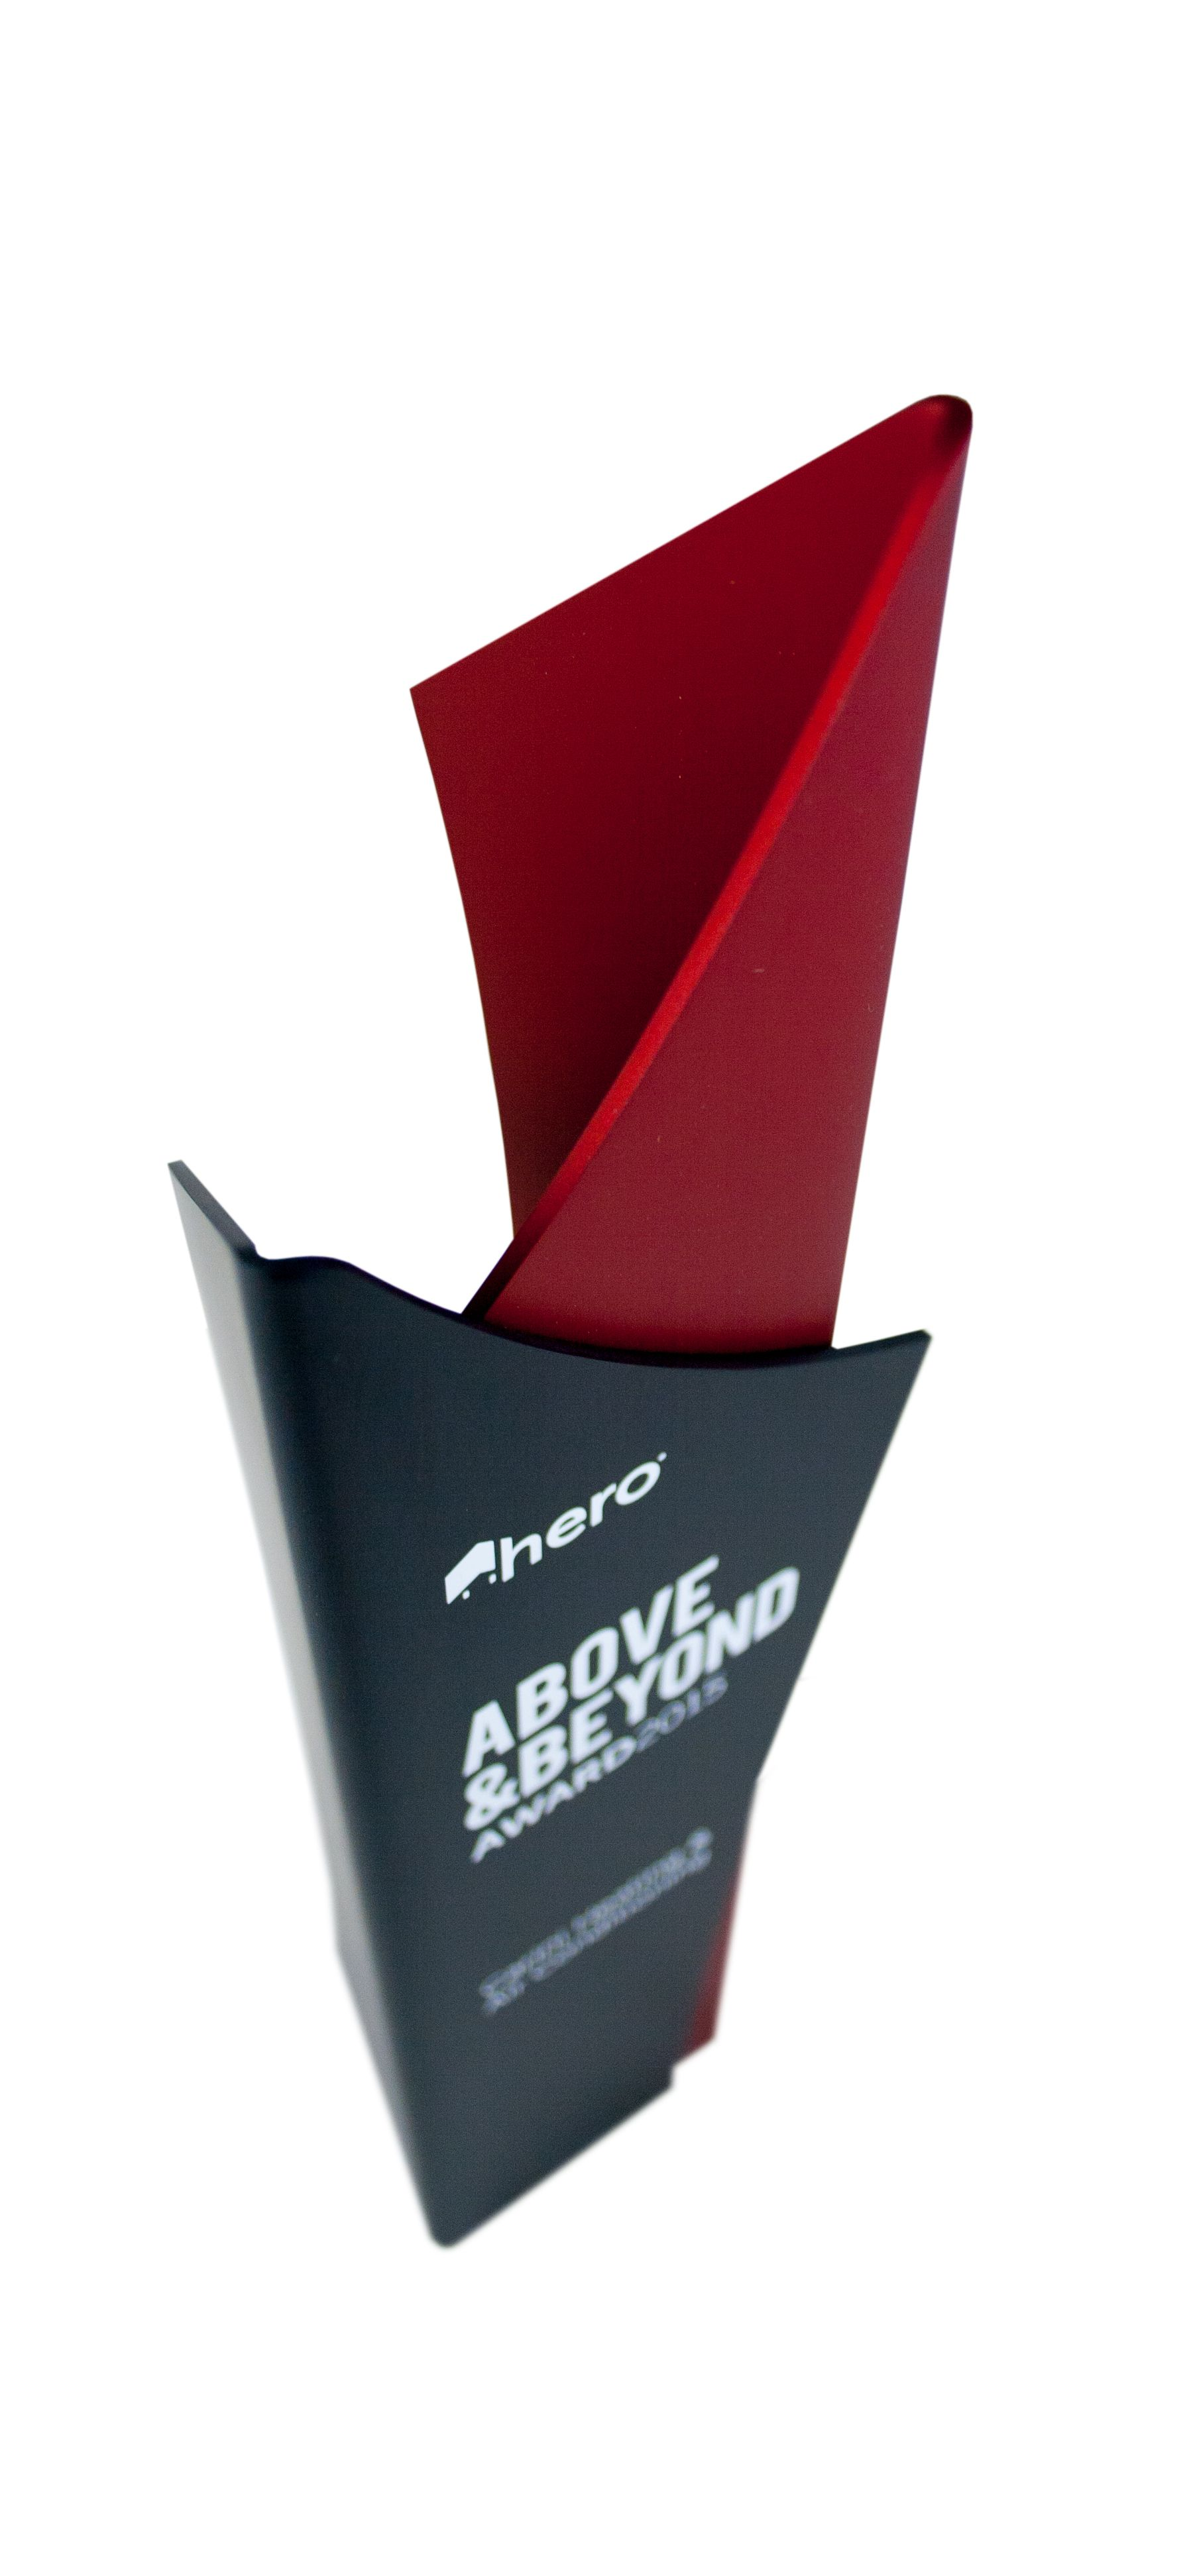 Our new unity tall trophy award design is sure to impress made